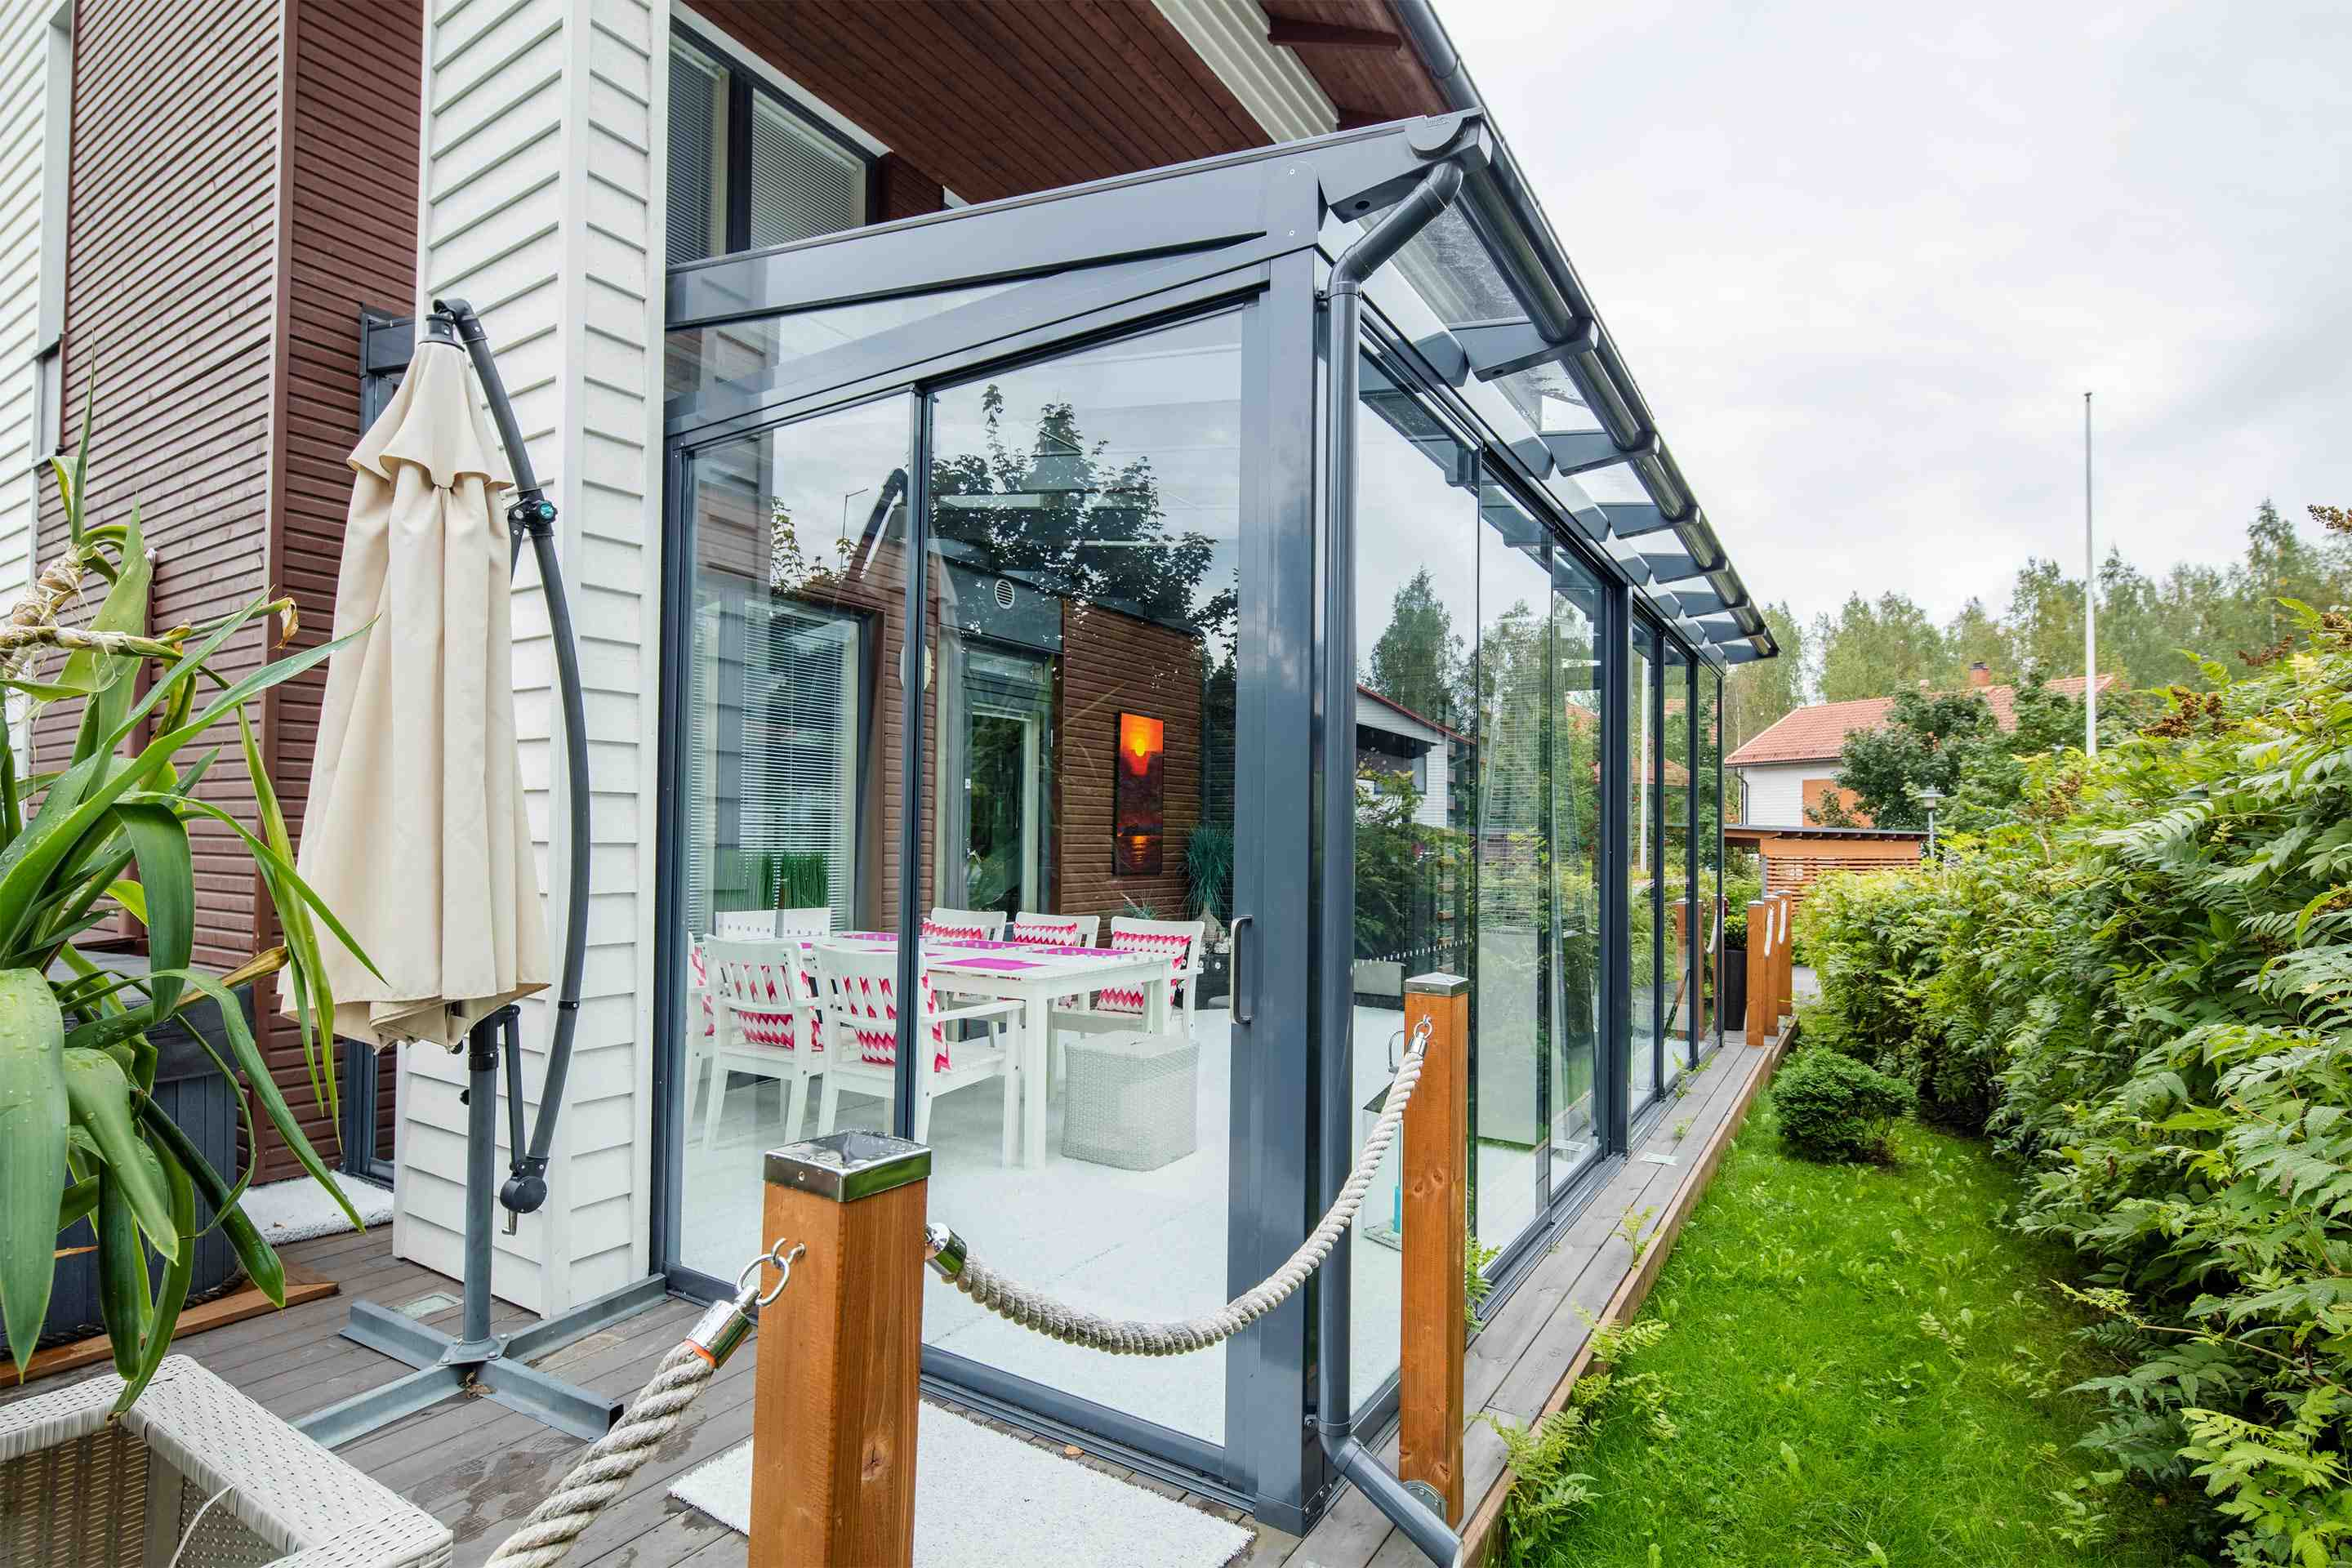 lumon canada, sunroom hamilton, sunroom toronto, sunroom vancouver, retractable glass